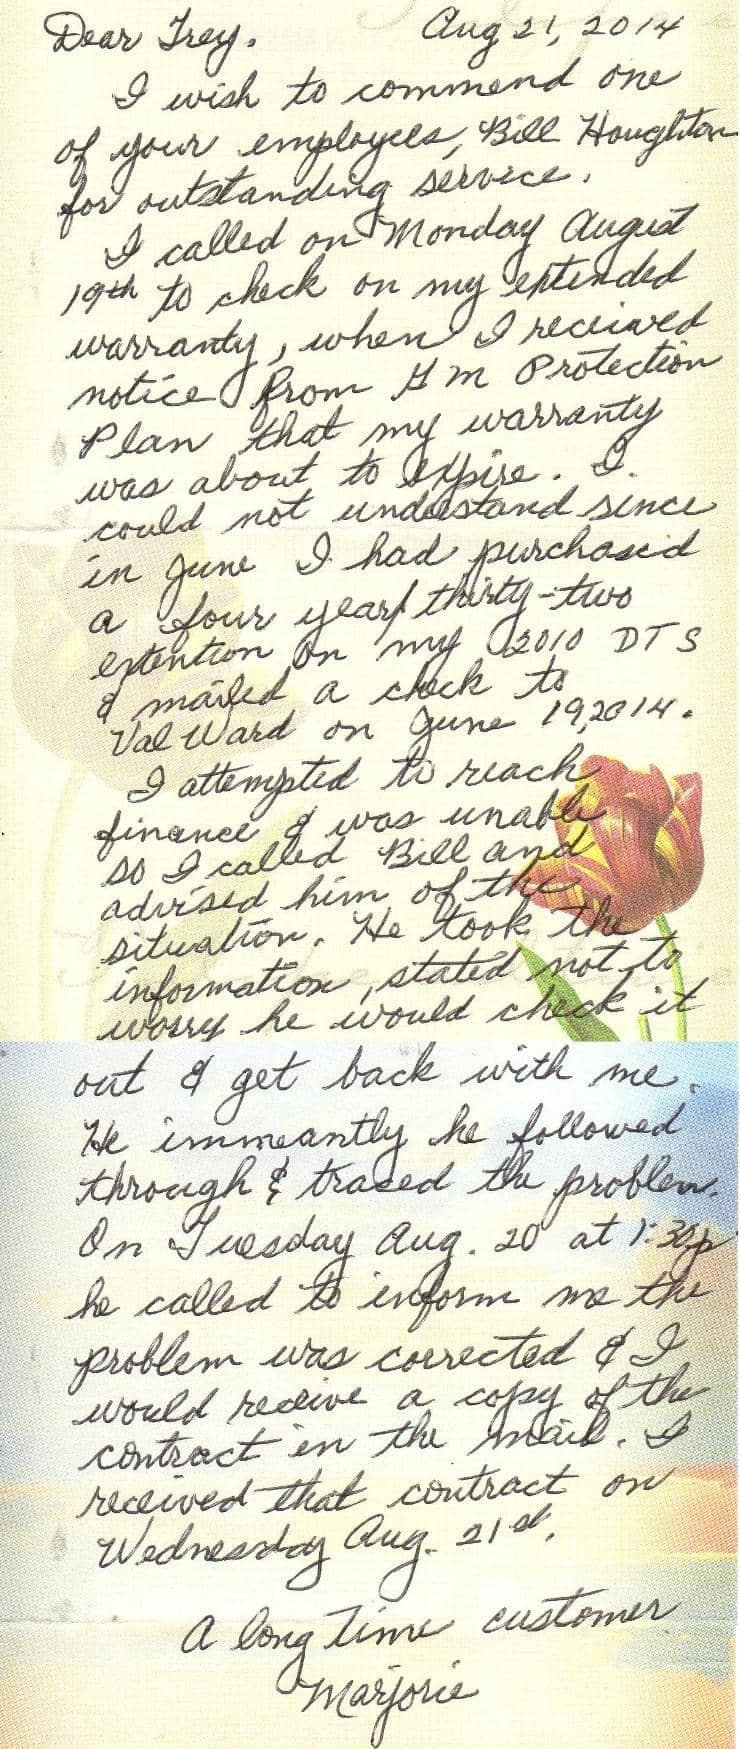 Marjorie's thank you note